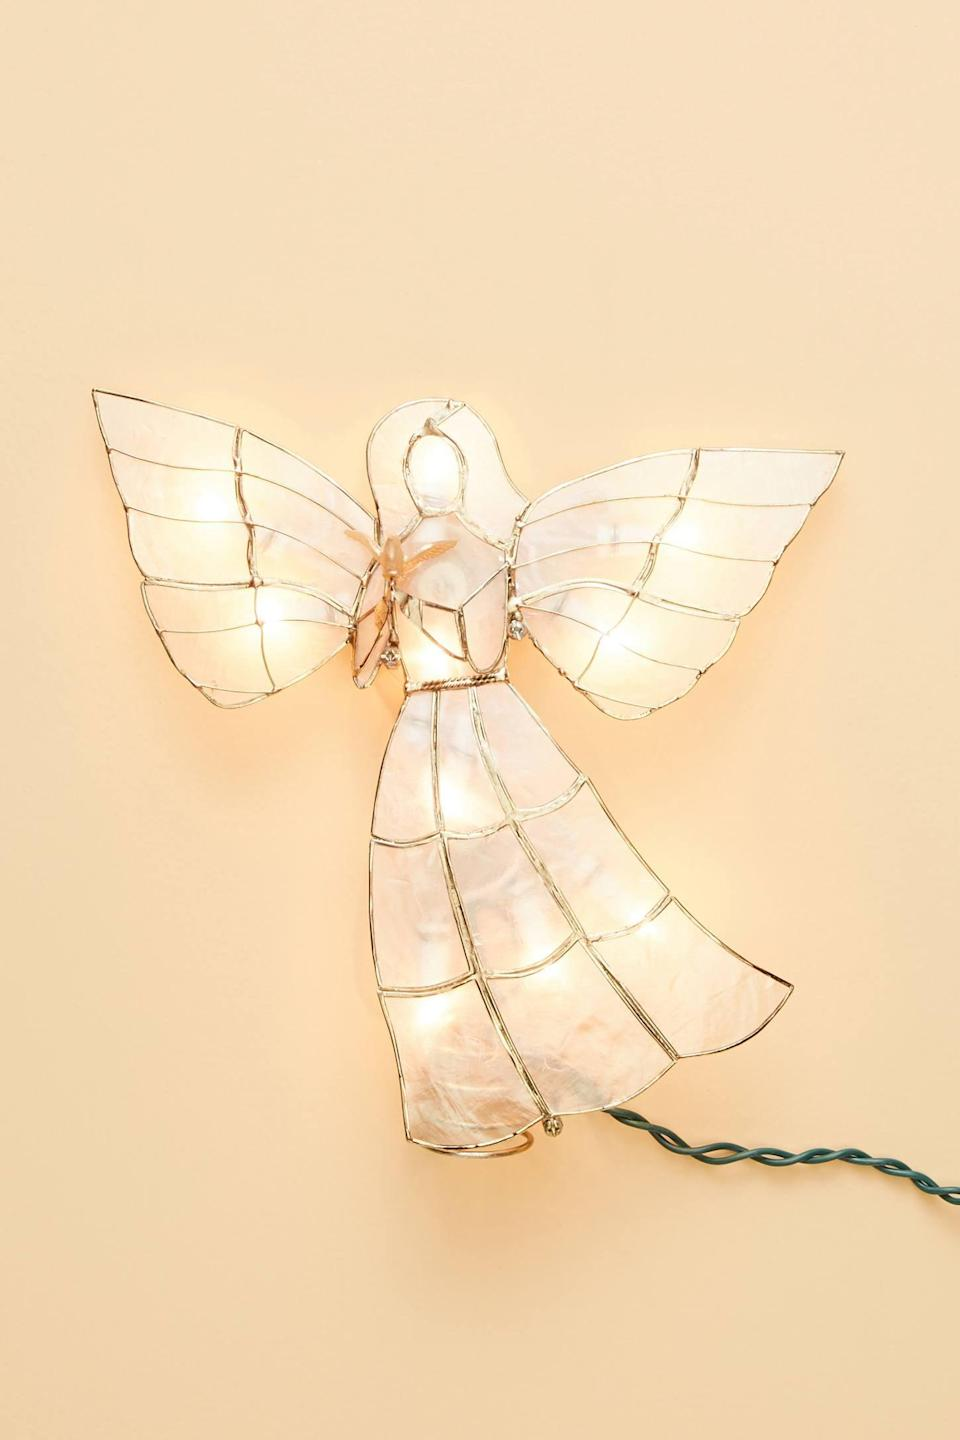 """<p>The <a href=""""https://www.popsugar.com/buy/Illuminated-Angel-Tree-Topper-490527?p_name=Illuminated%20Angel%20Tree%20Topper&retailer=anthropologie.com&pid=490527&price=38&evar1=casa%3Aus&evar9=46615300&evar98=https%3A%2F%2Fwww.popsugar.com%2Fhome%2Fphoto-gallery%2F46615300%2Fimage%2F46615397%2FIlluminated-Angel-Tree-Topper&list1=shopping%2Canthropologie%2Choliday%2Cchristmas%2Cchristmas%20decorations%2Choliday%20decor%2Chome%20shopping&prop13=mobile&pdata=1"""" rel=""""nofollow noopener"""" class=""""link rapid-noclick-resp"""" target=""""_blank"""" data-ylk=""""slk:Illuminated Angel Tree Topper"""">Illuminated Angel Tree Topper</a> ($38) is so calming to look at. </p>"""